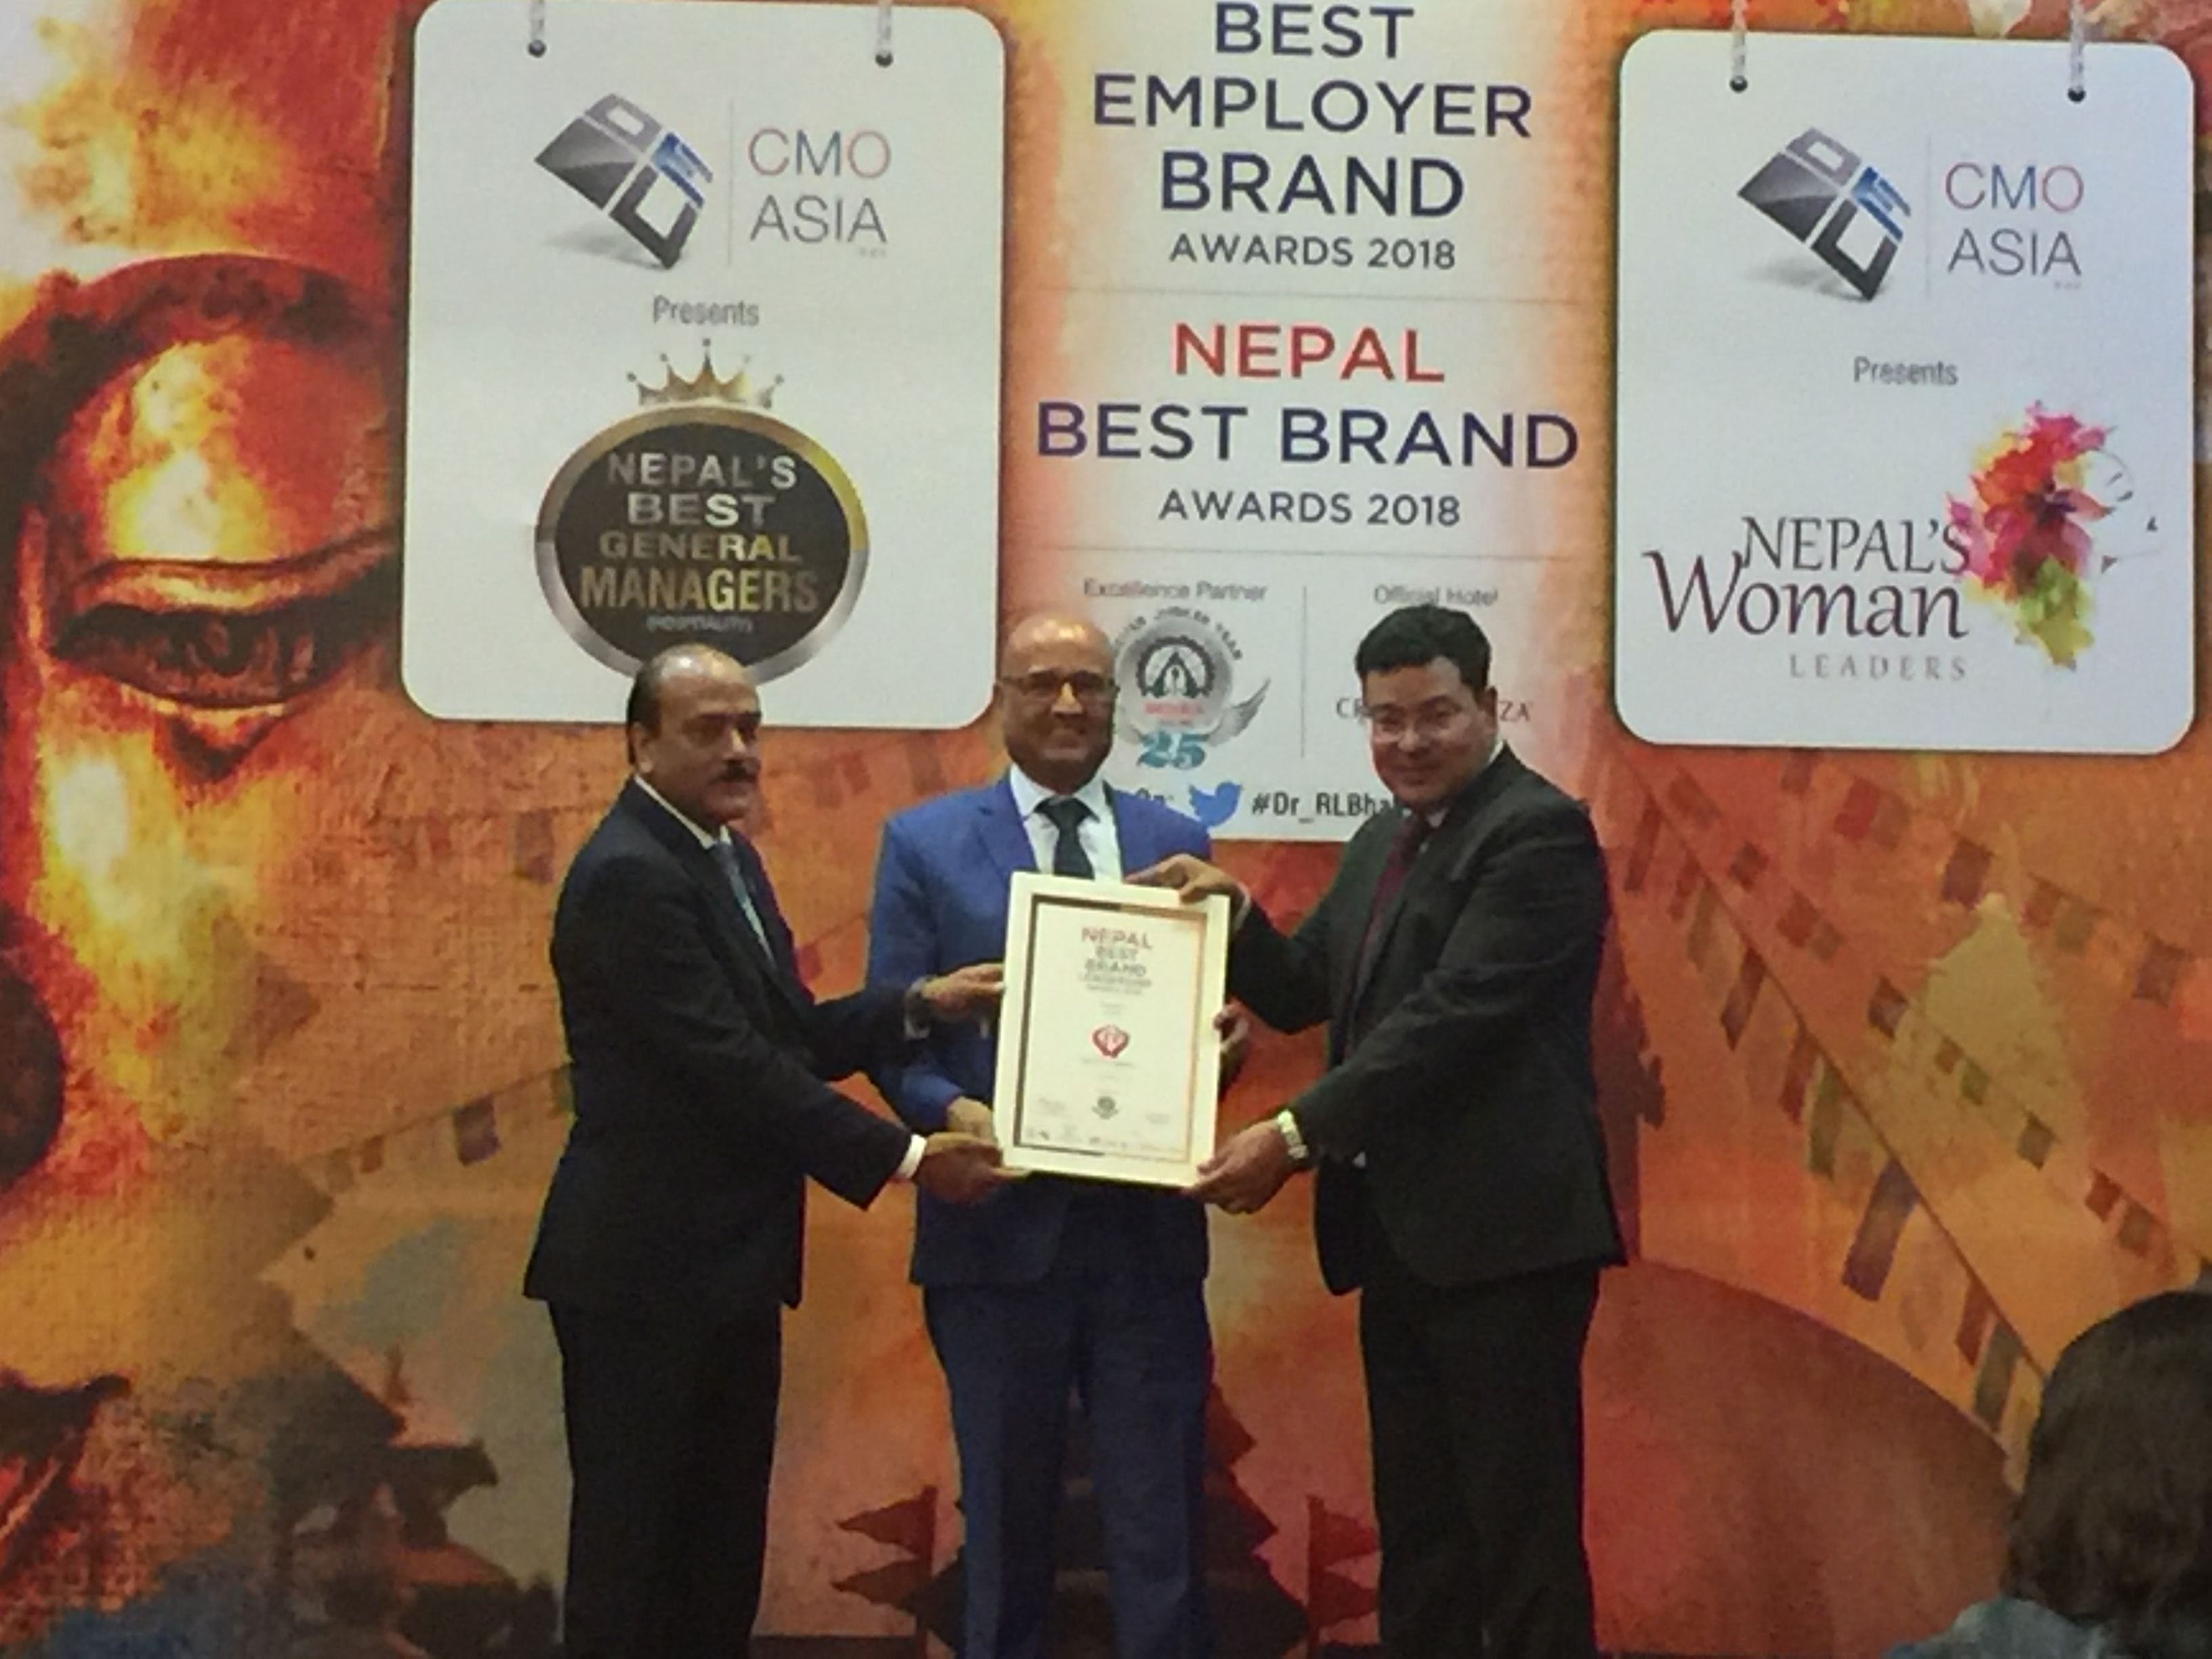 CRS receives a much deserved Best Brands in Nepal from CMO ASIA. Congratulations to everyone in CRS for their dedication to making CRS the best brand in Nepal.